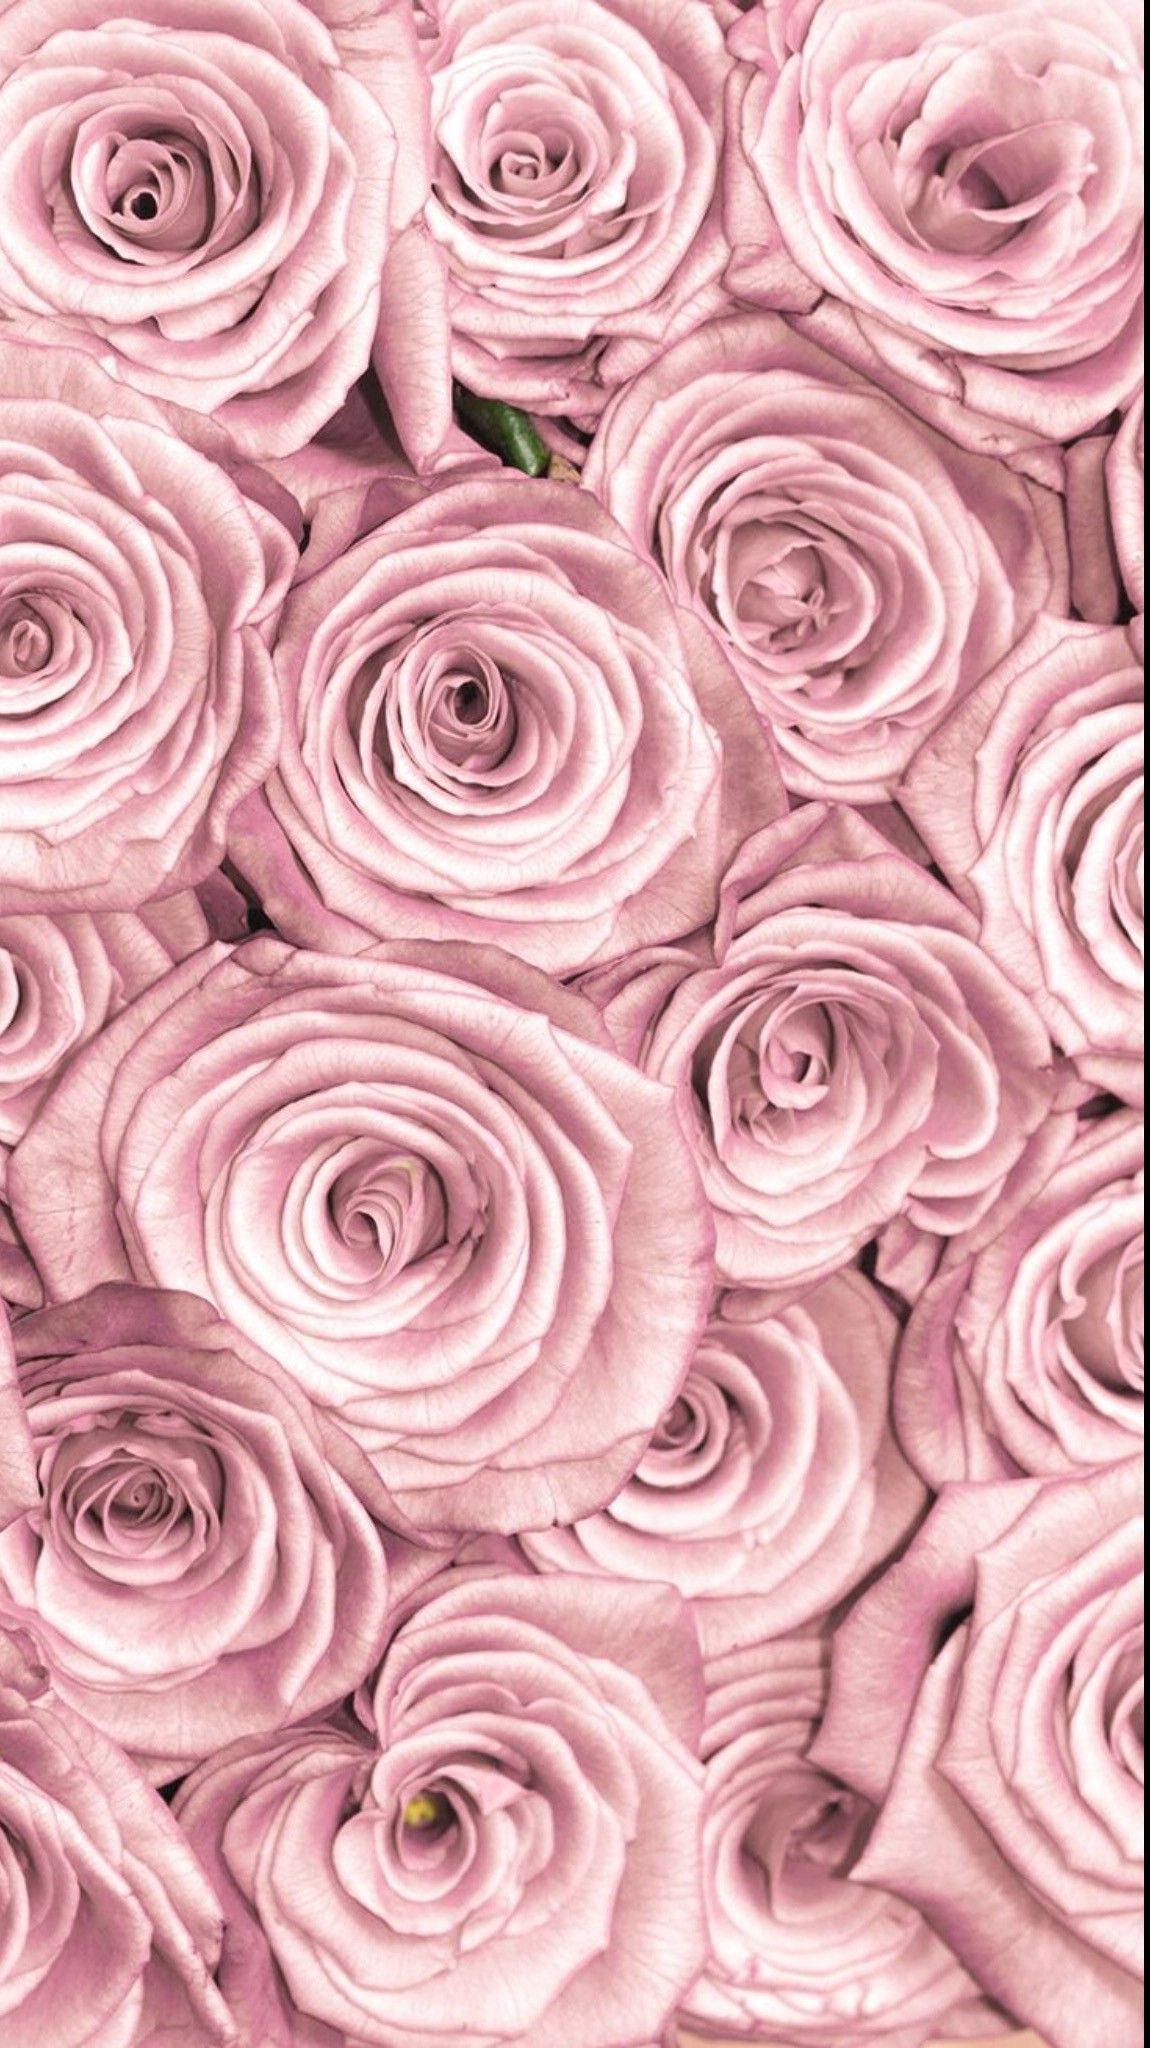 Rose Gold Wallpapers 57 Images Rose Gold Wallpaper Iphone Gold Wallpaper Background Gold Wallpaper Iphone